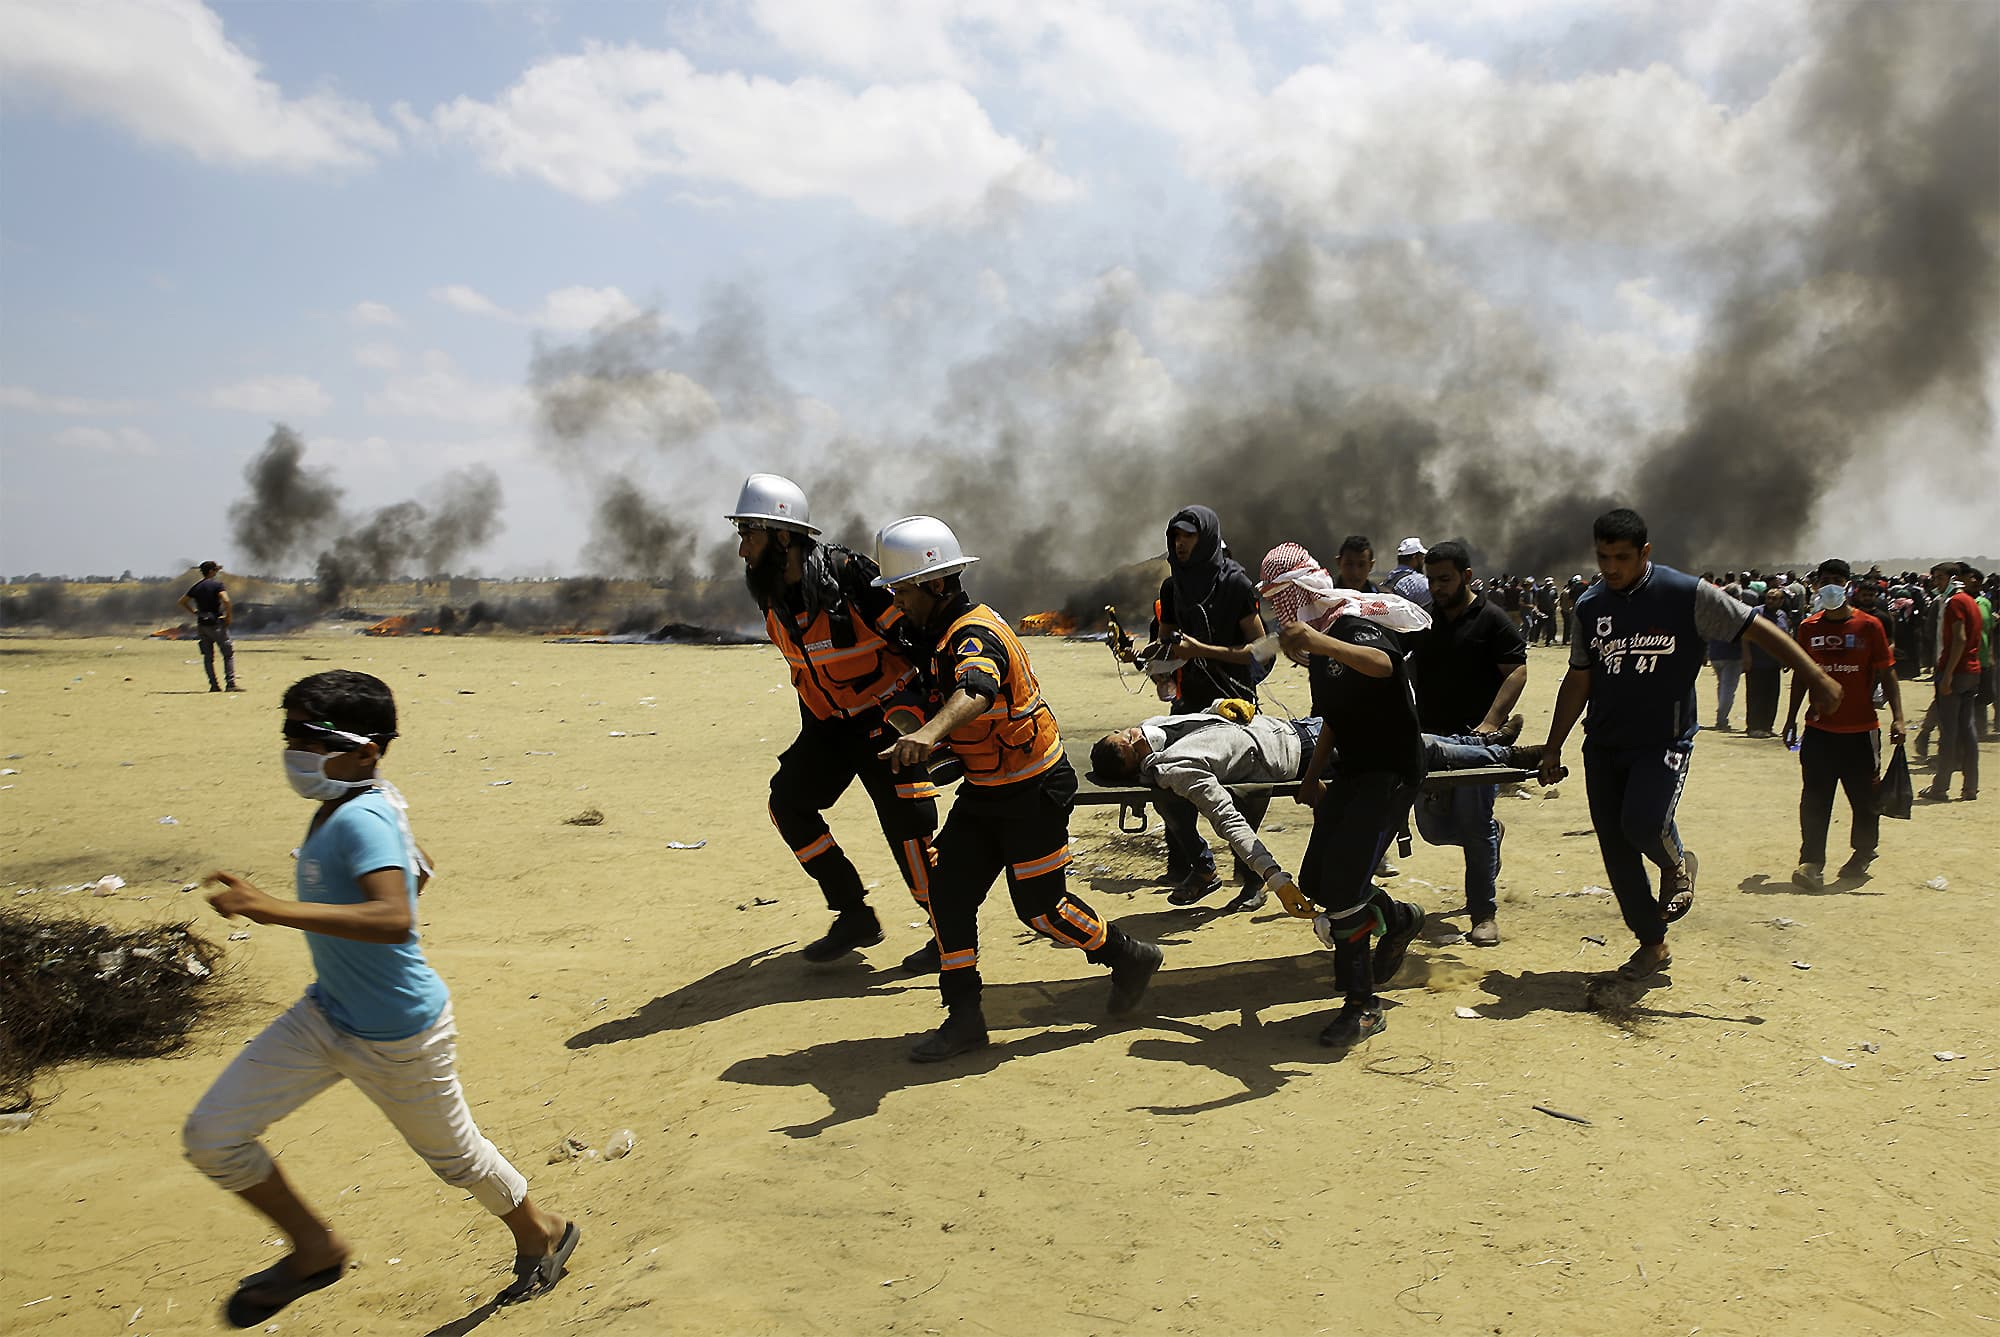 Palestinian medics and protesters evacuate a wounded youth during a protest at the Gaza Strip's border with Israel. ─ AP